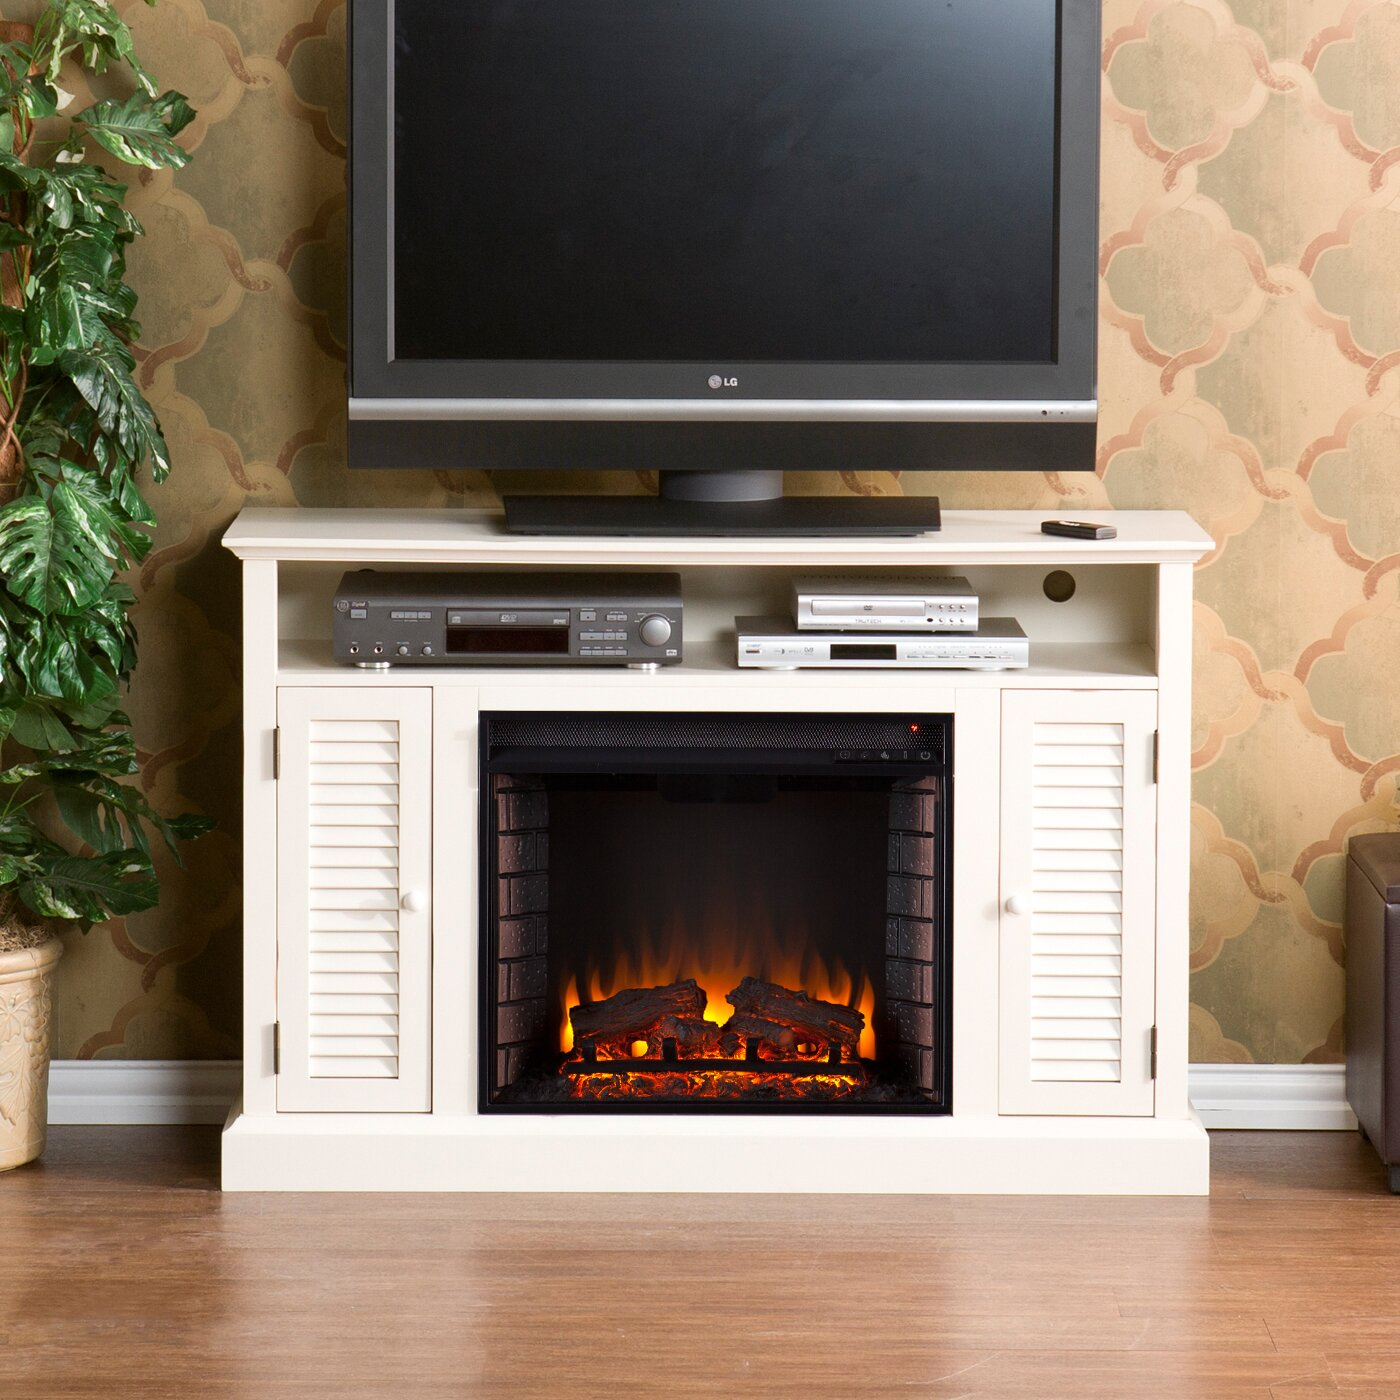 Cheap electric fireplace tv stand - Osmond Tv Stand With Electric Fireplace